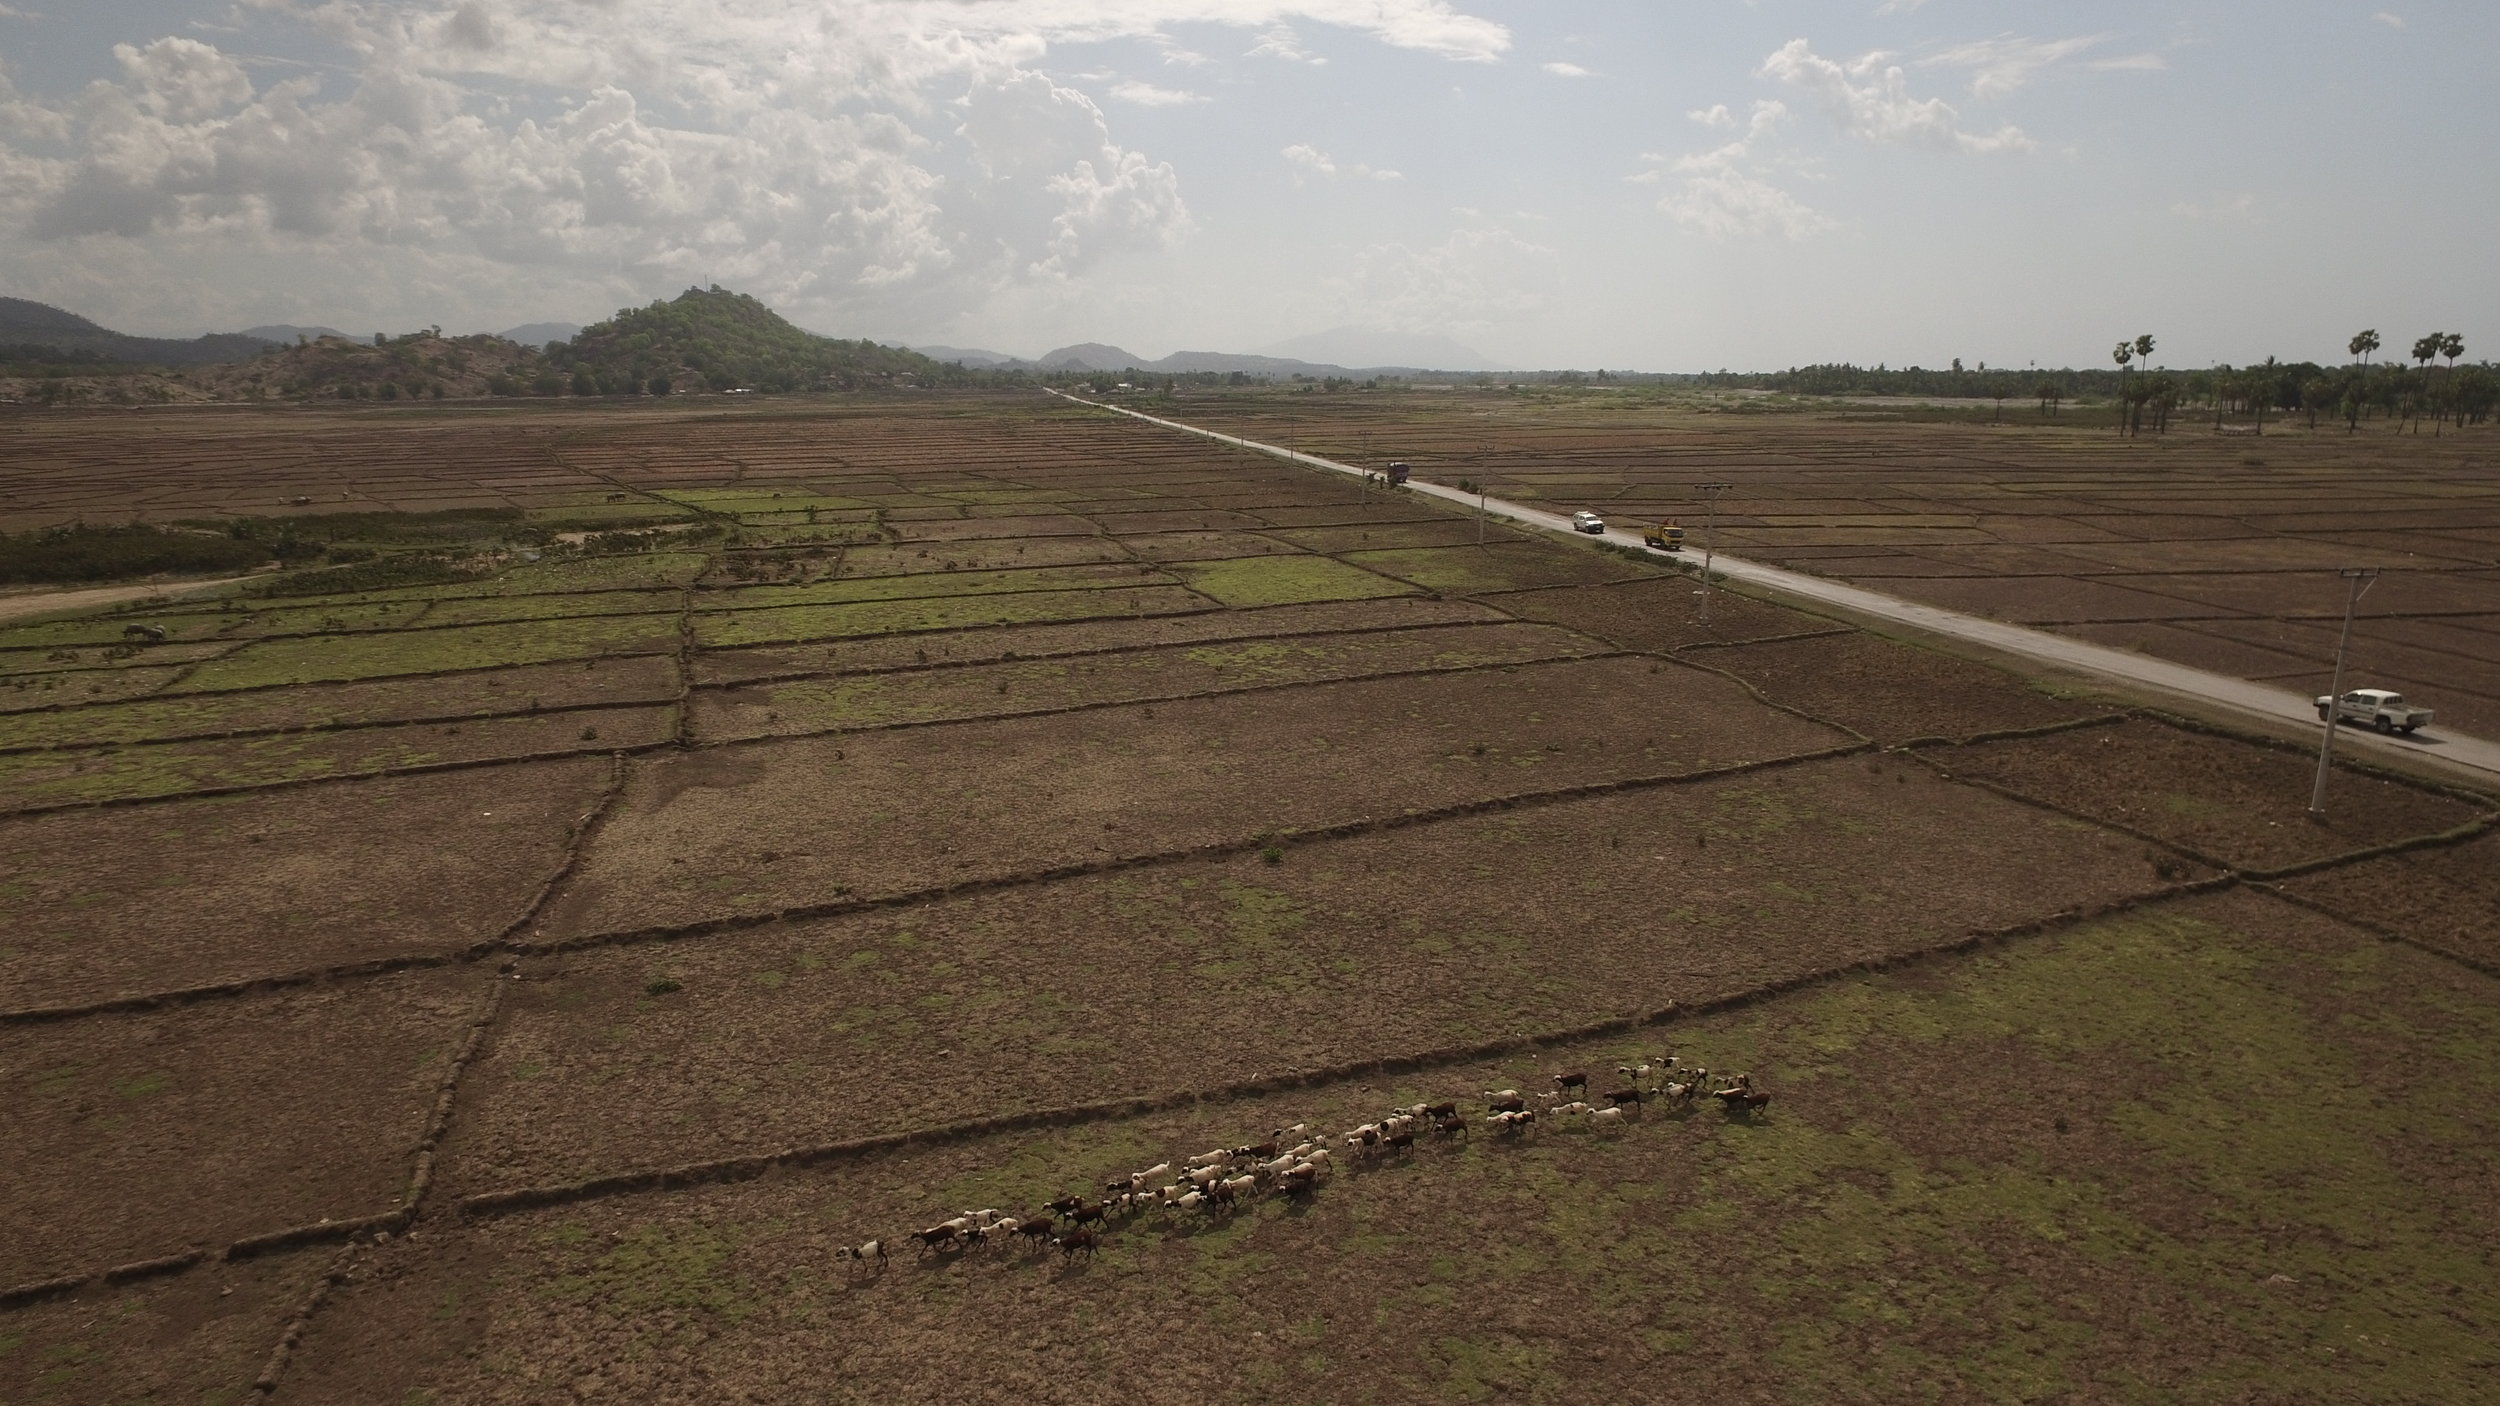 Drone footage from Timor-Leste farmlands by Ben Kreimer